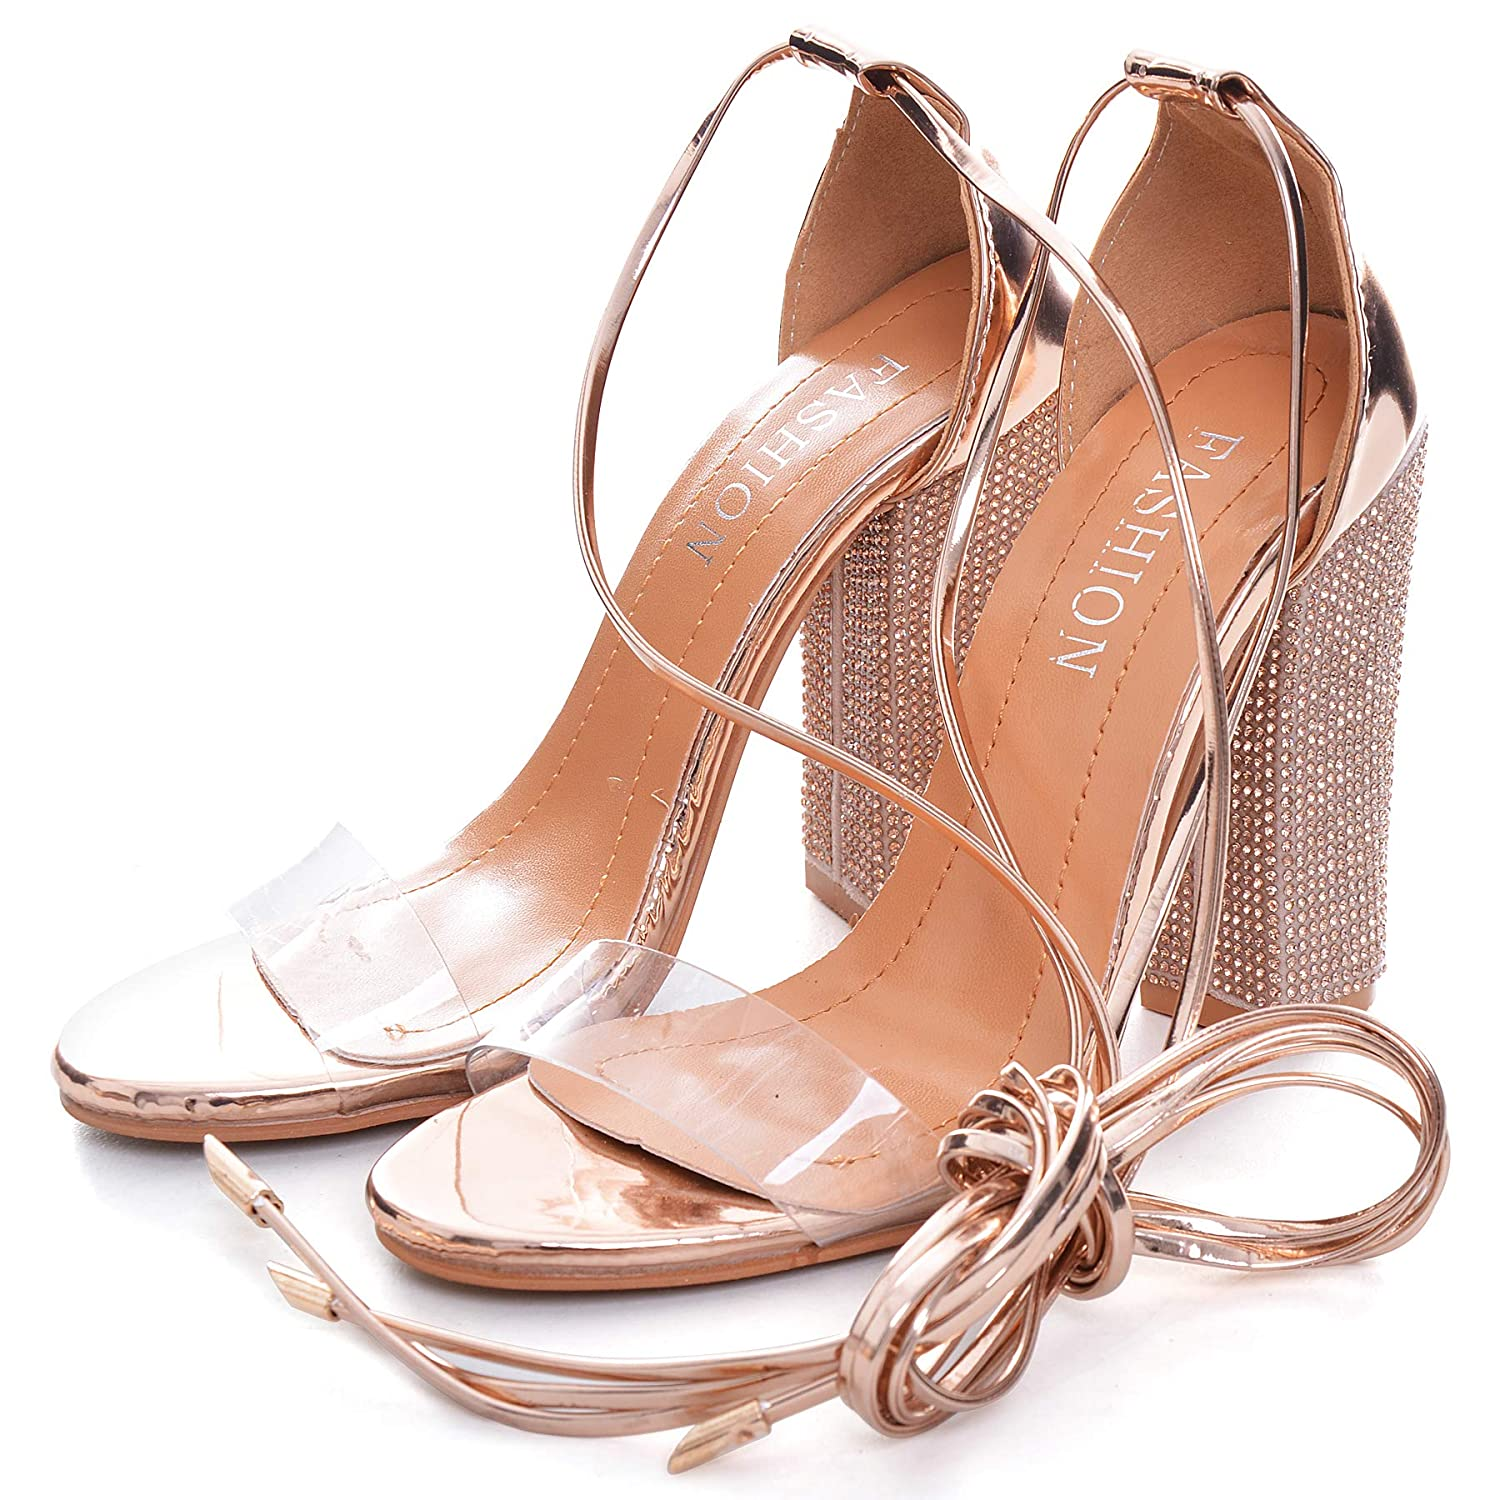 a0ac65045bd Women's Rhinestone Heels Gladiator Lace up High Heels Sandals with Ankle  Strappy Clear Chunky Heels Open Toe Covered Stiletto Dress Party Pumps Shoes